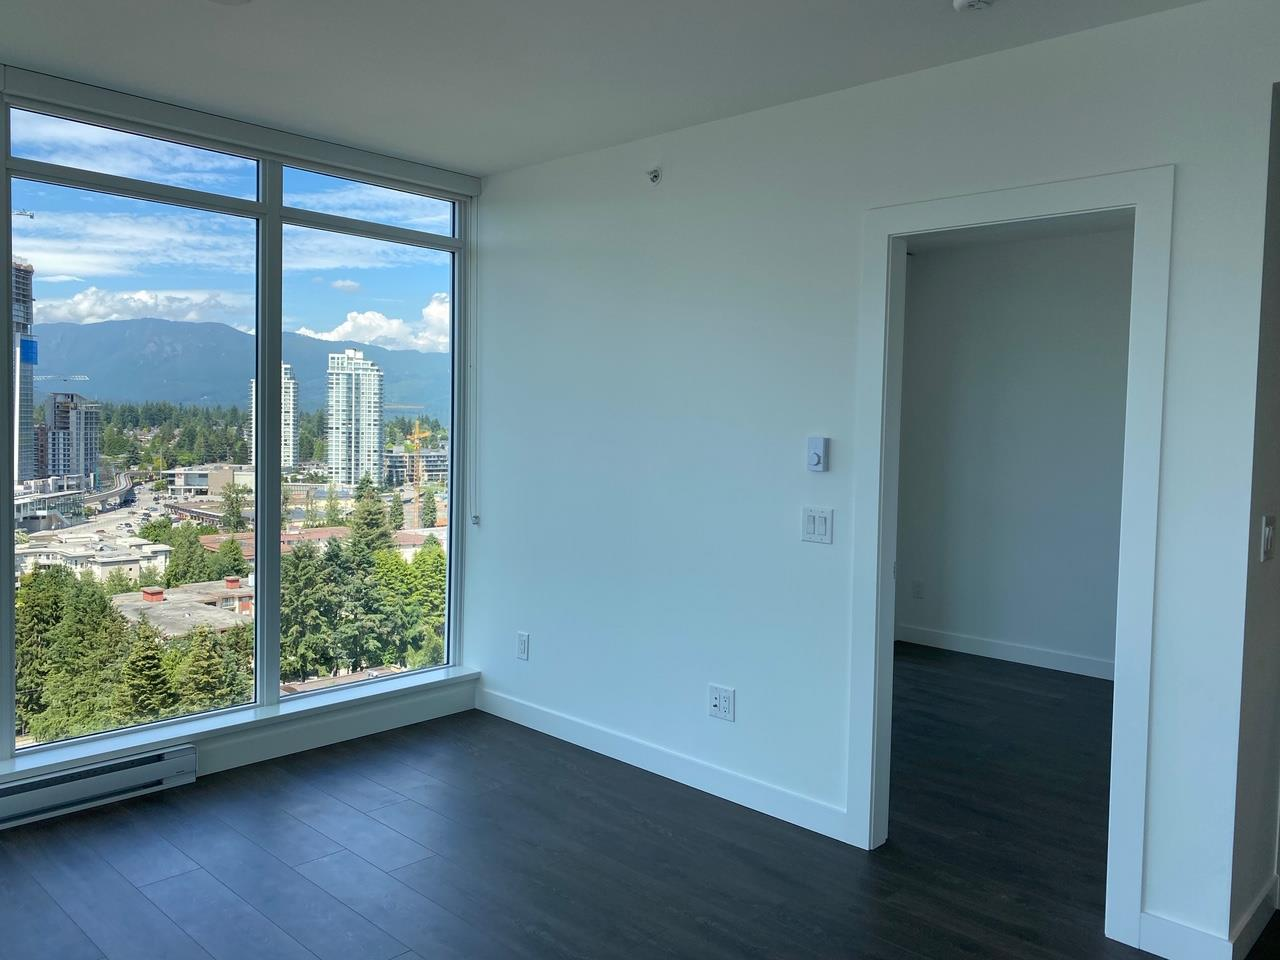 2009 657 WHITING WAY - Coquitlam West Apartment/Condo for sale, 2 Bedrooms (R2470807) - #8